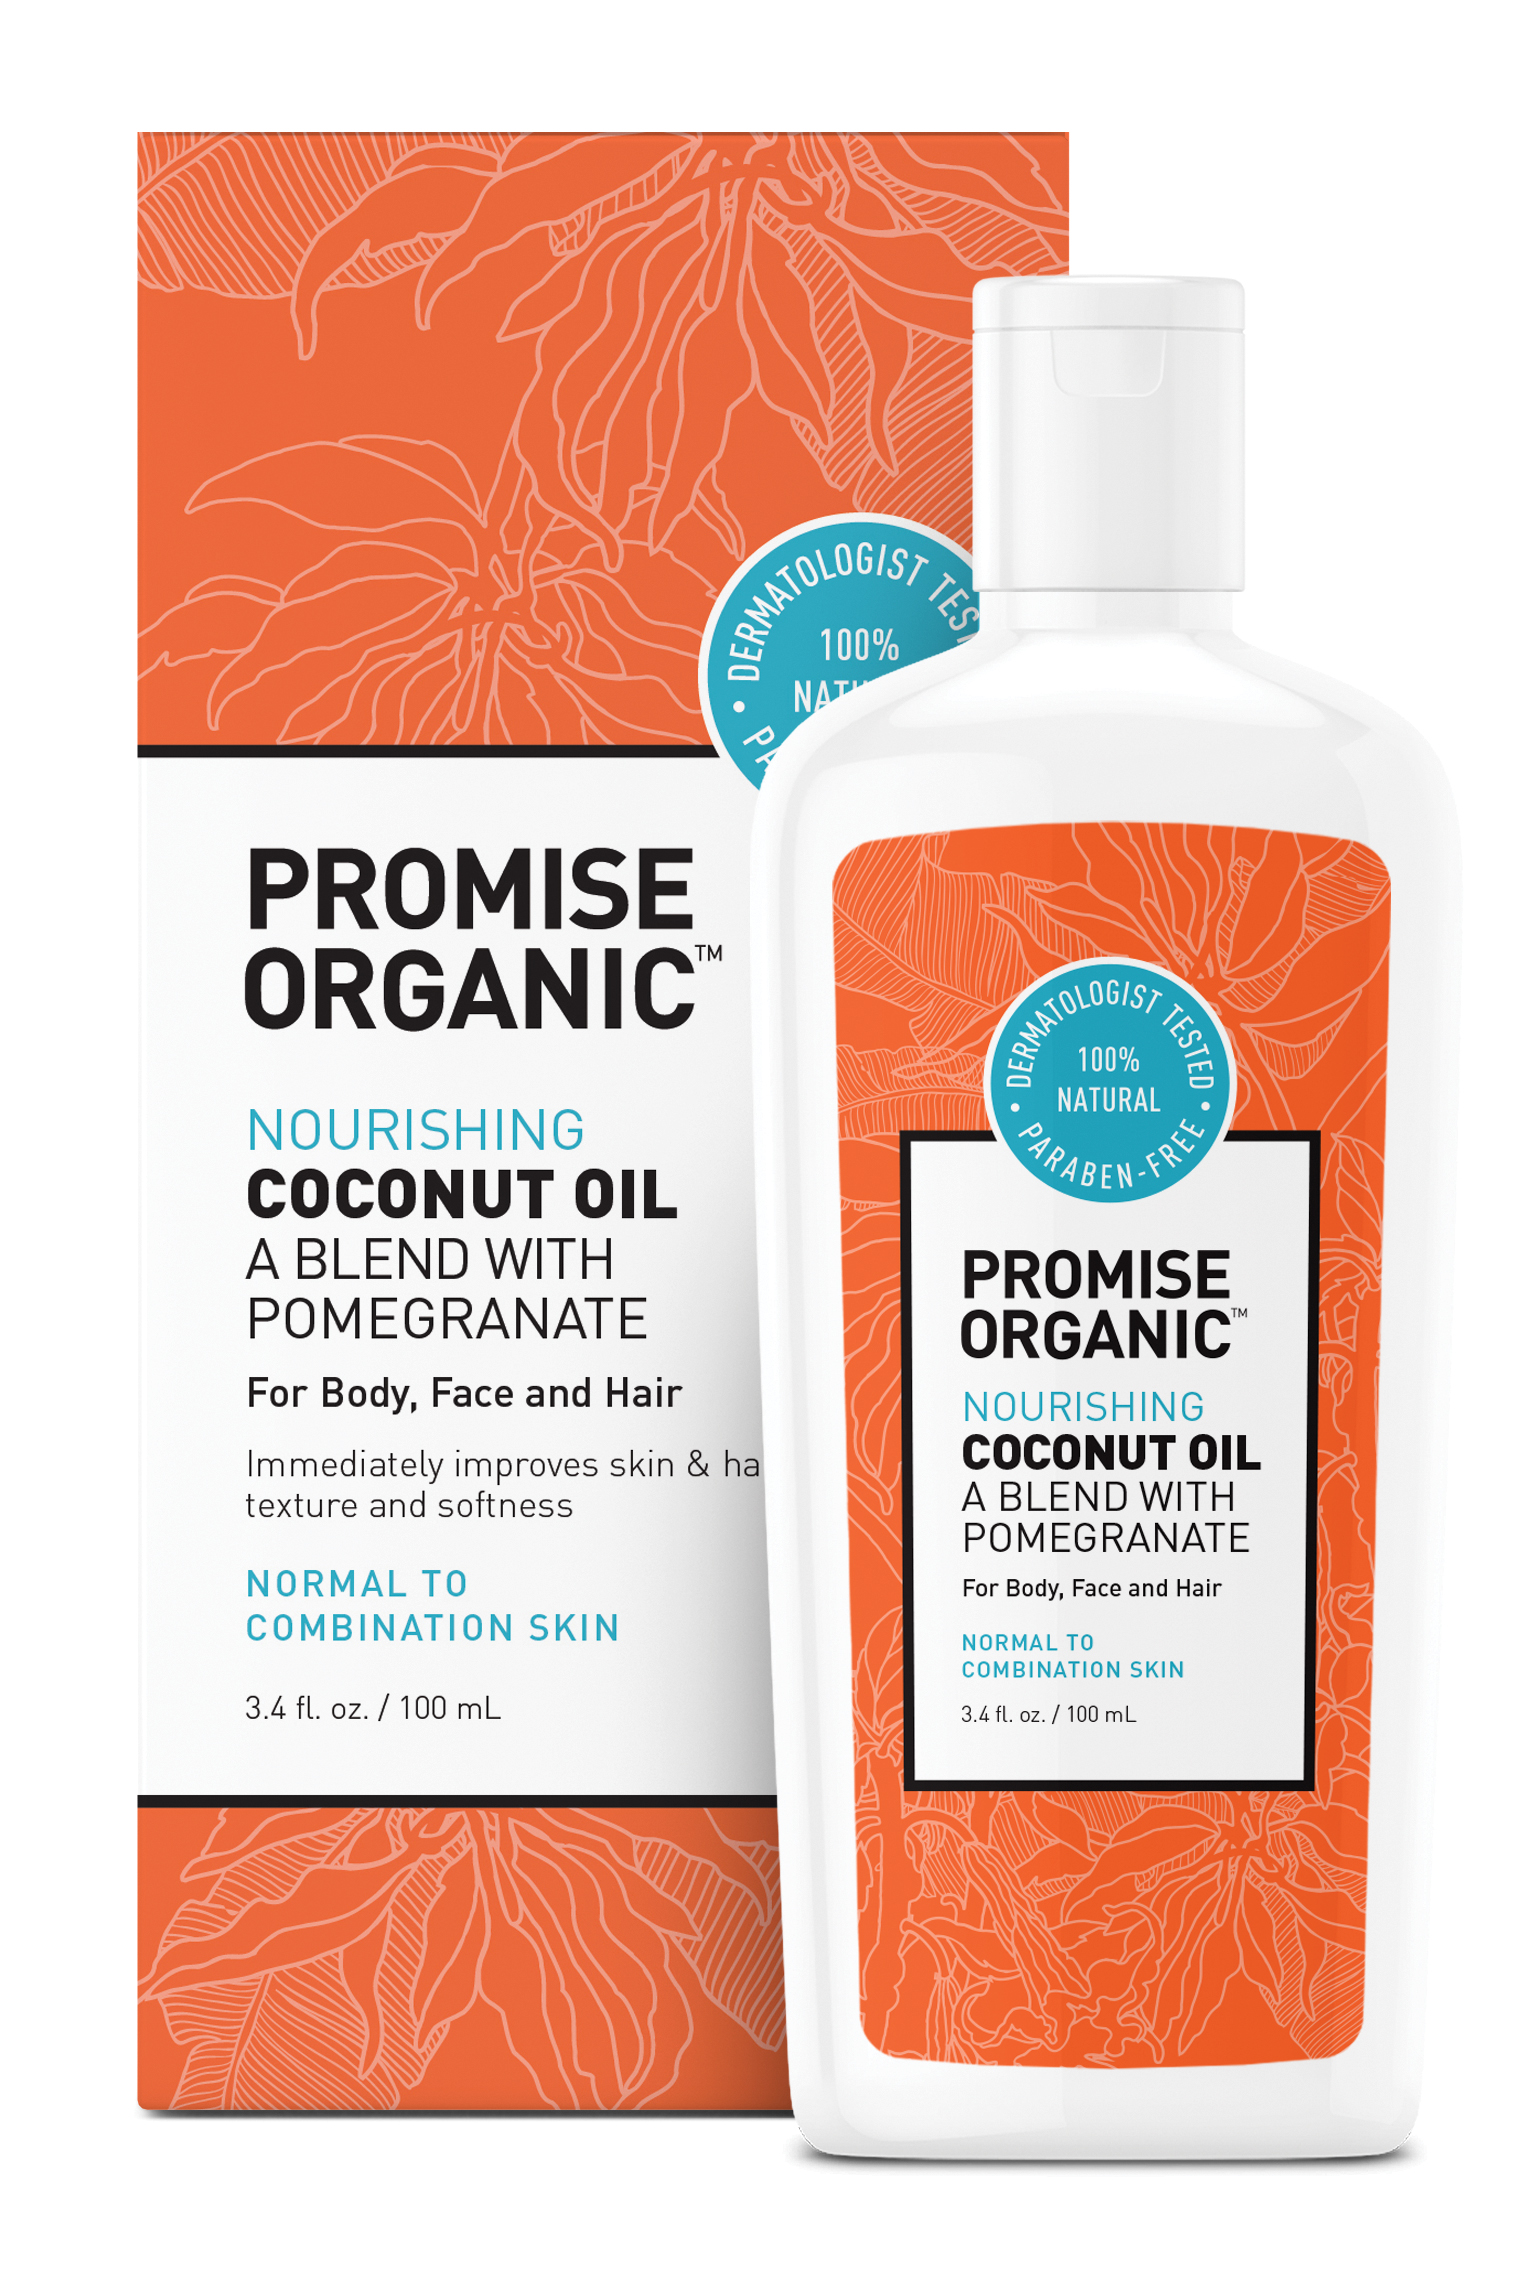 Promise Organic Nourishing Coconut Oil with Pomegranate